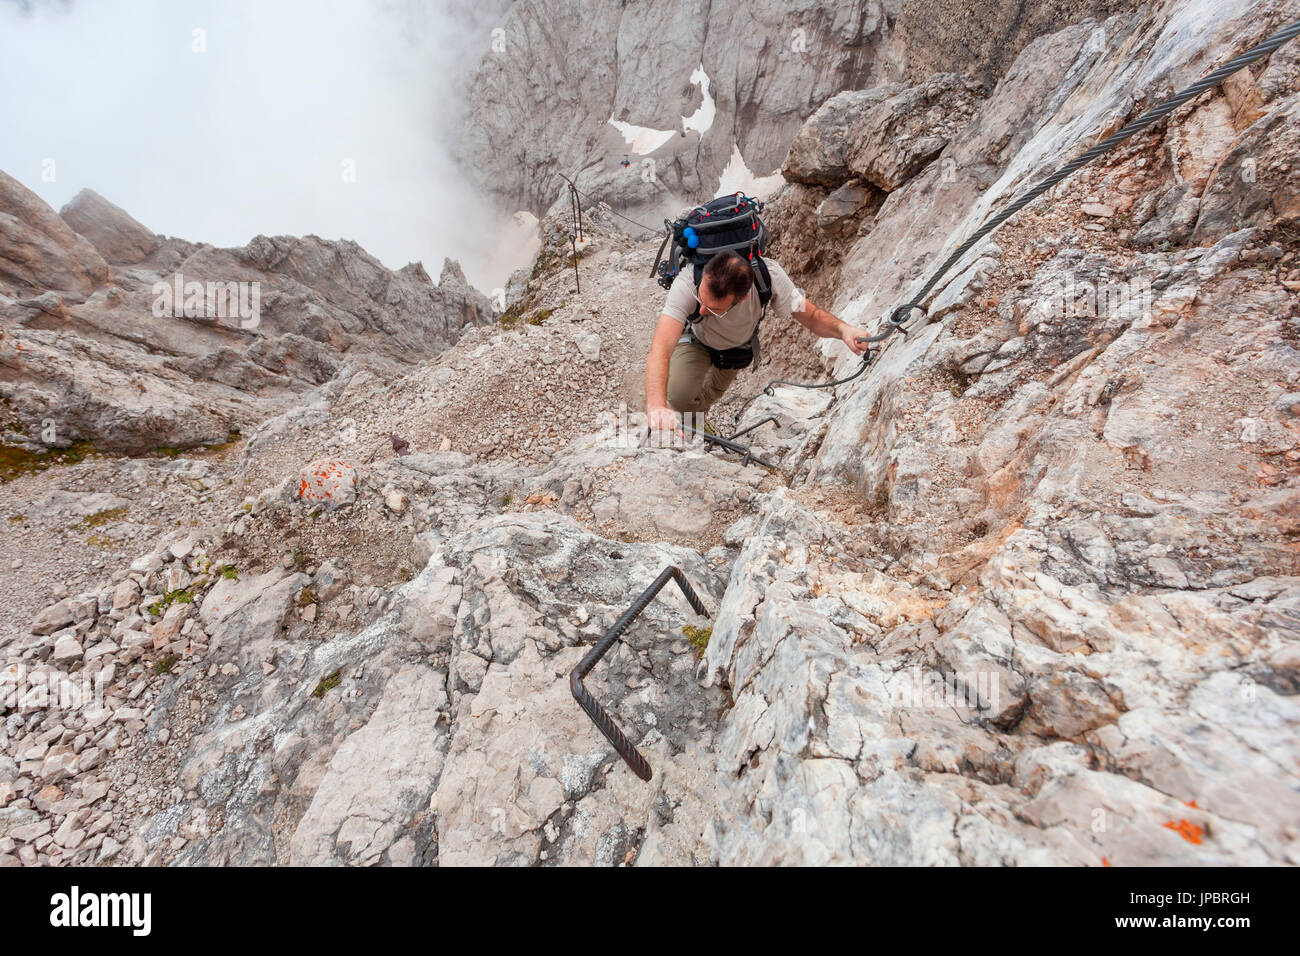 Hikers on the itinerary of the visit to the monumental zone of Punta Serauta, Marmolada. The path running between caves and trenches. Dolomites - Stock Image